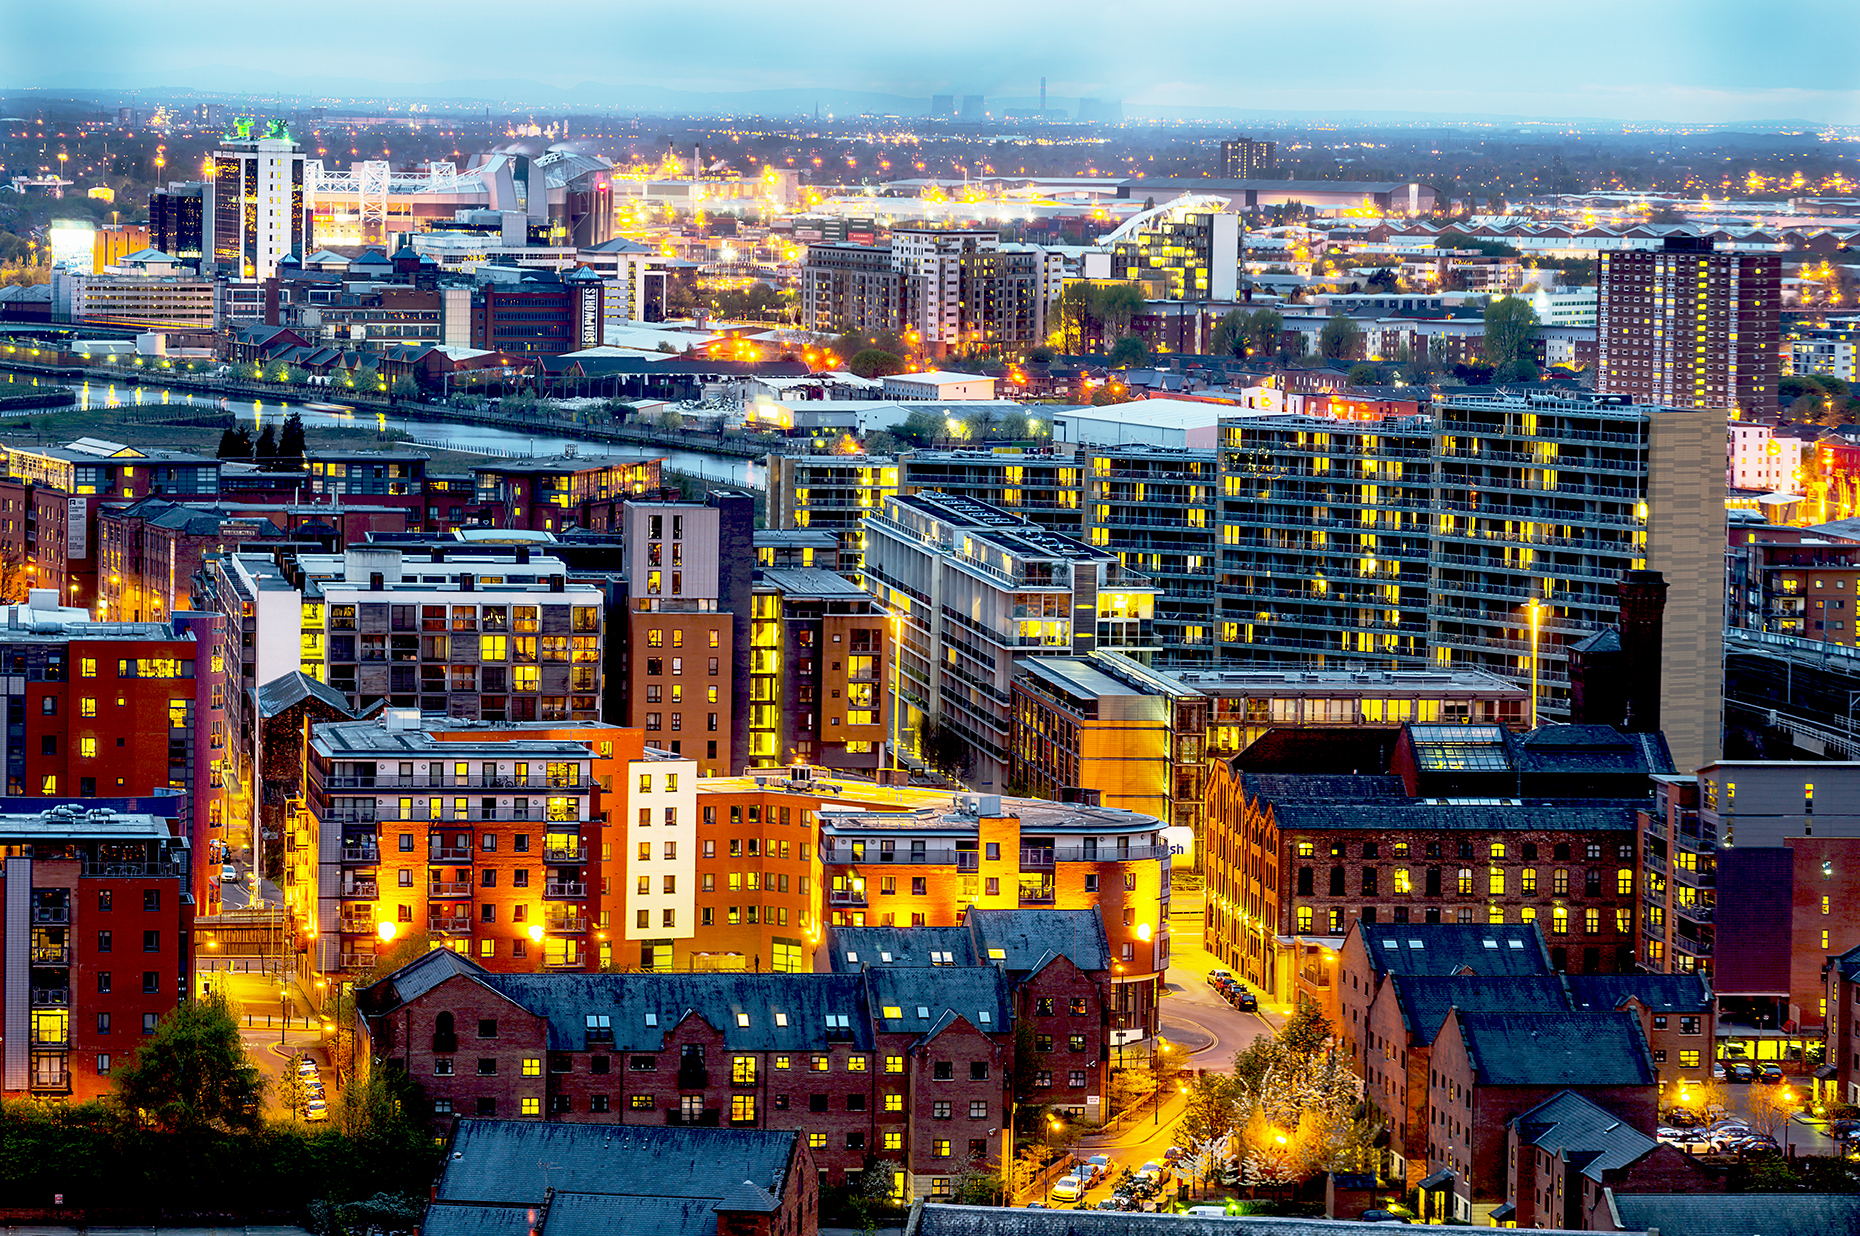 Cities at Night - Manchester